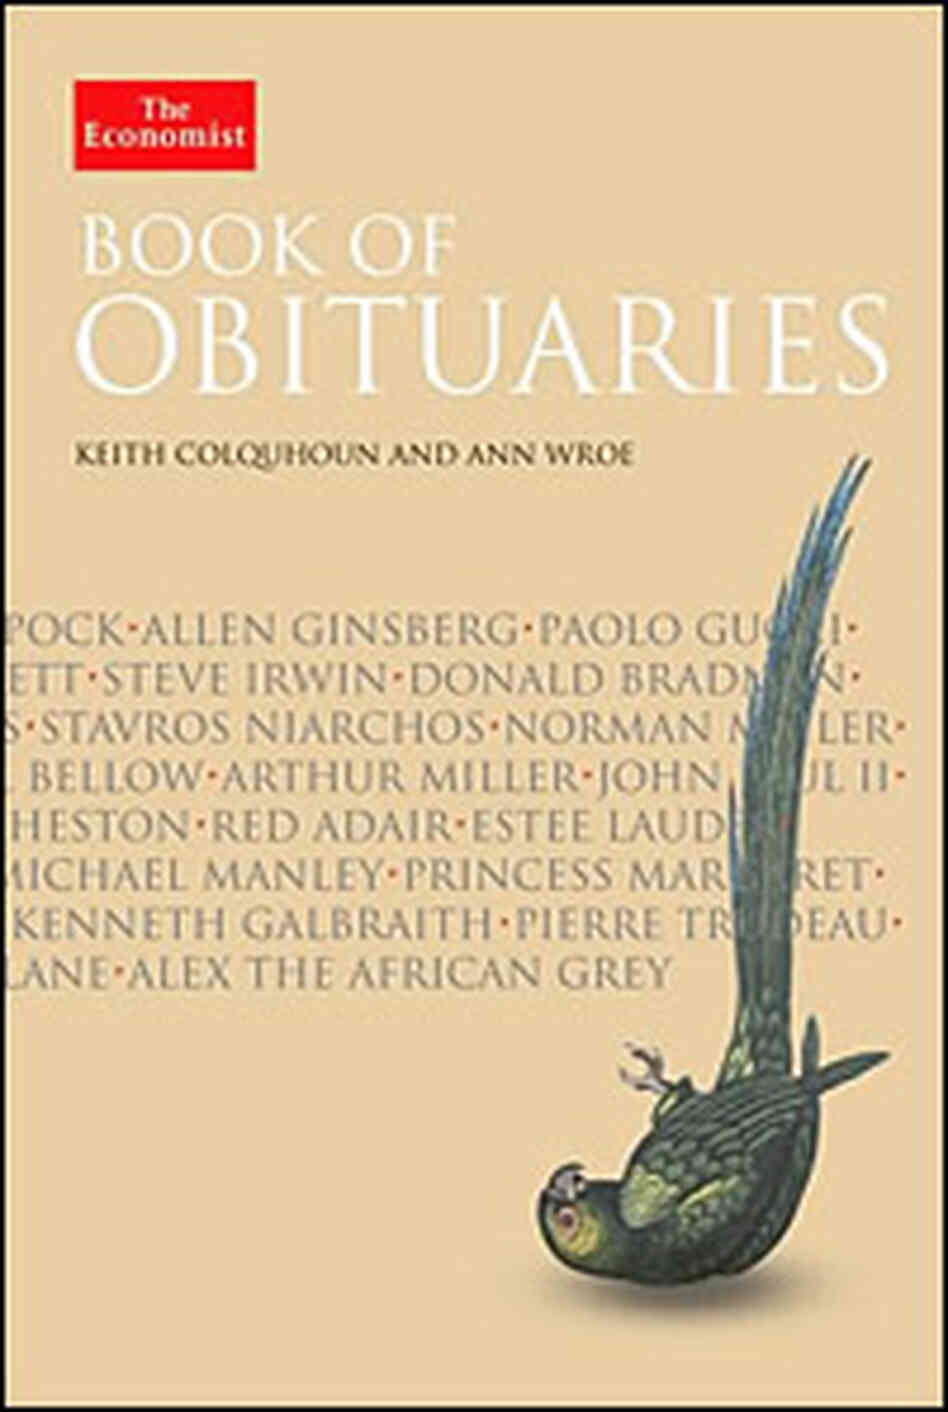 'The Economist Book of Obituaries'